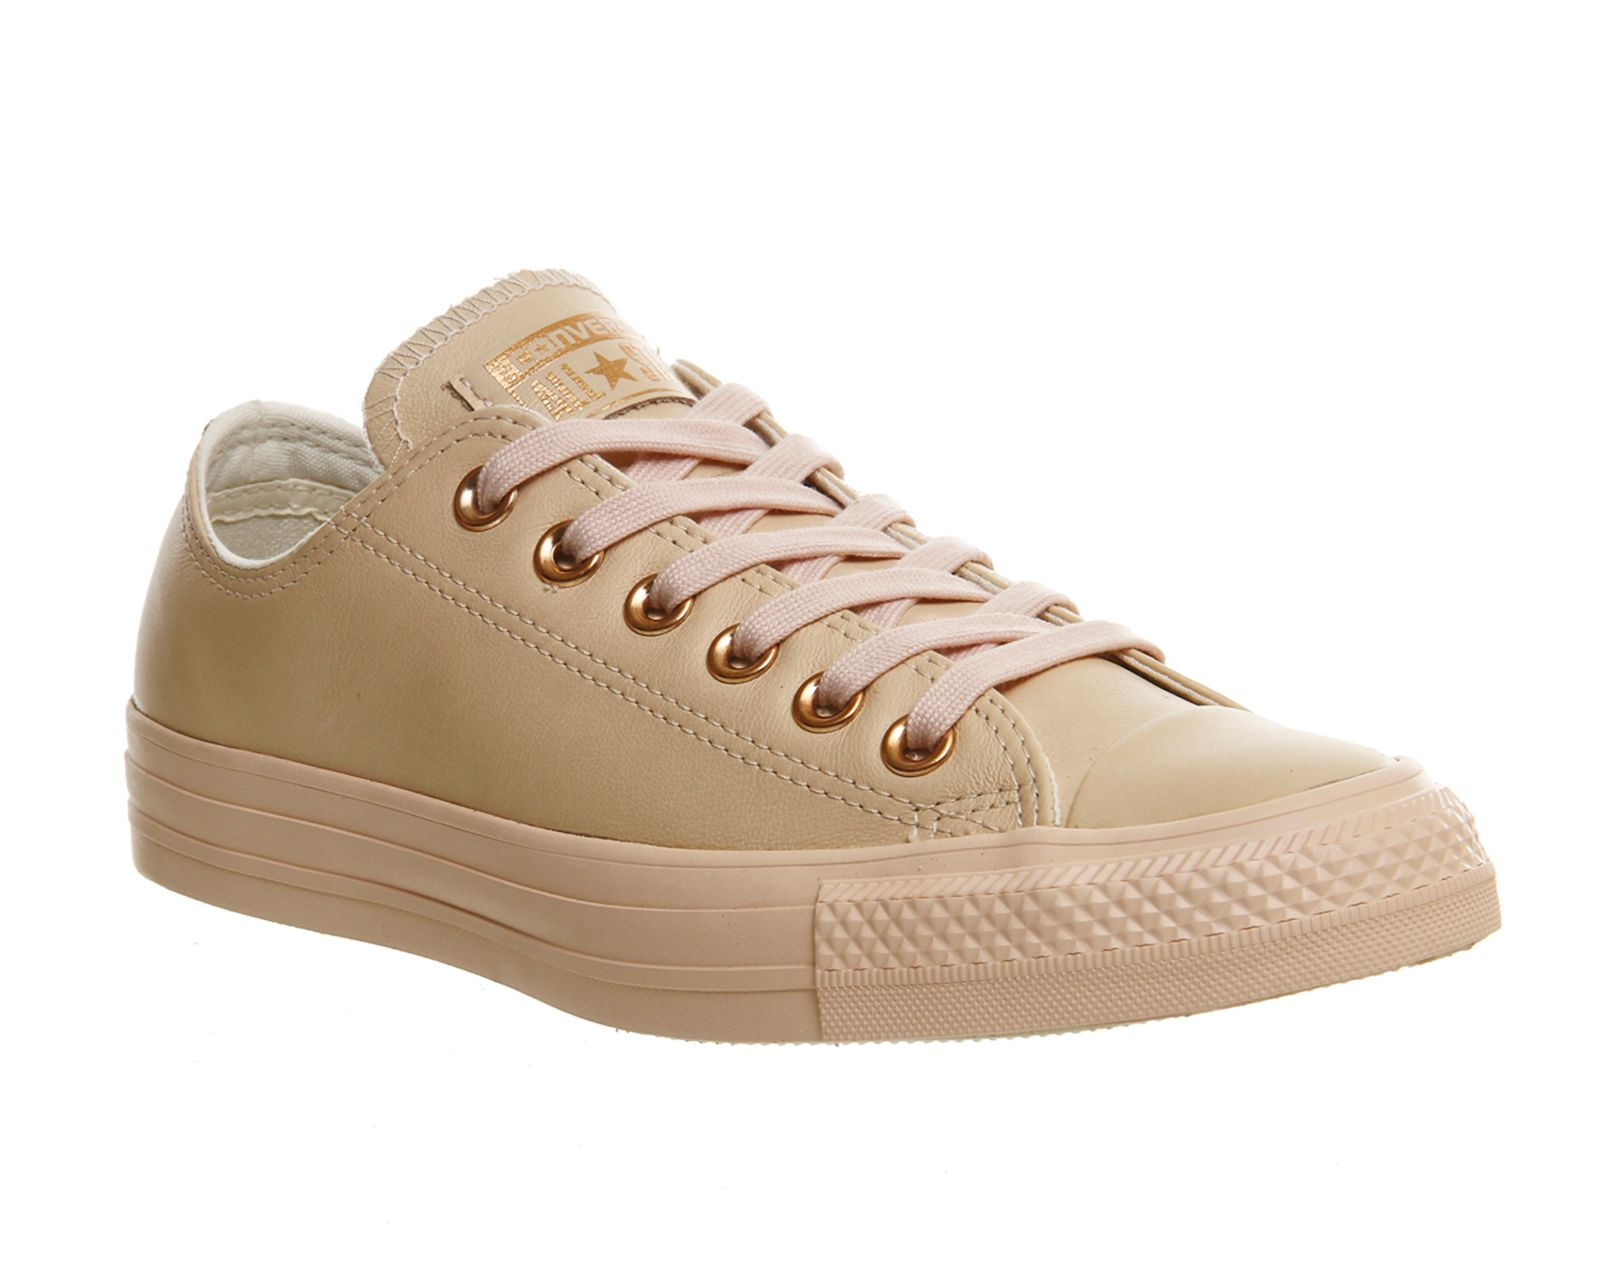 Converse All star low leather trainers, Multi-Pastel